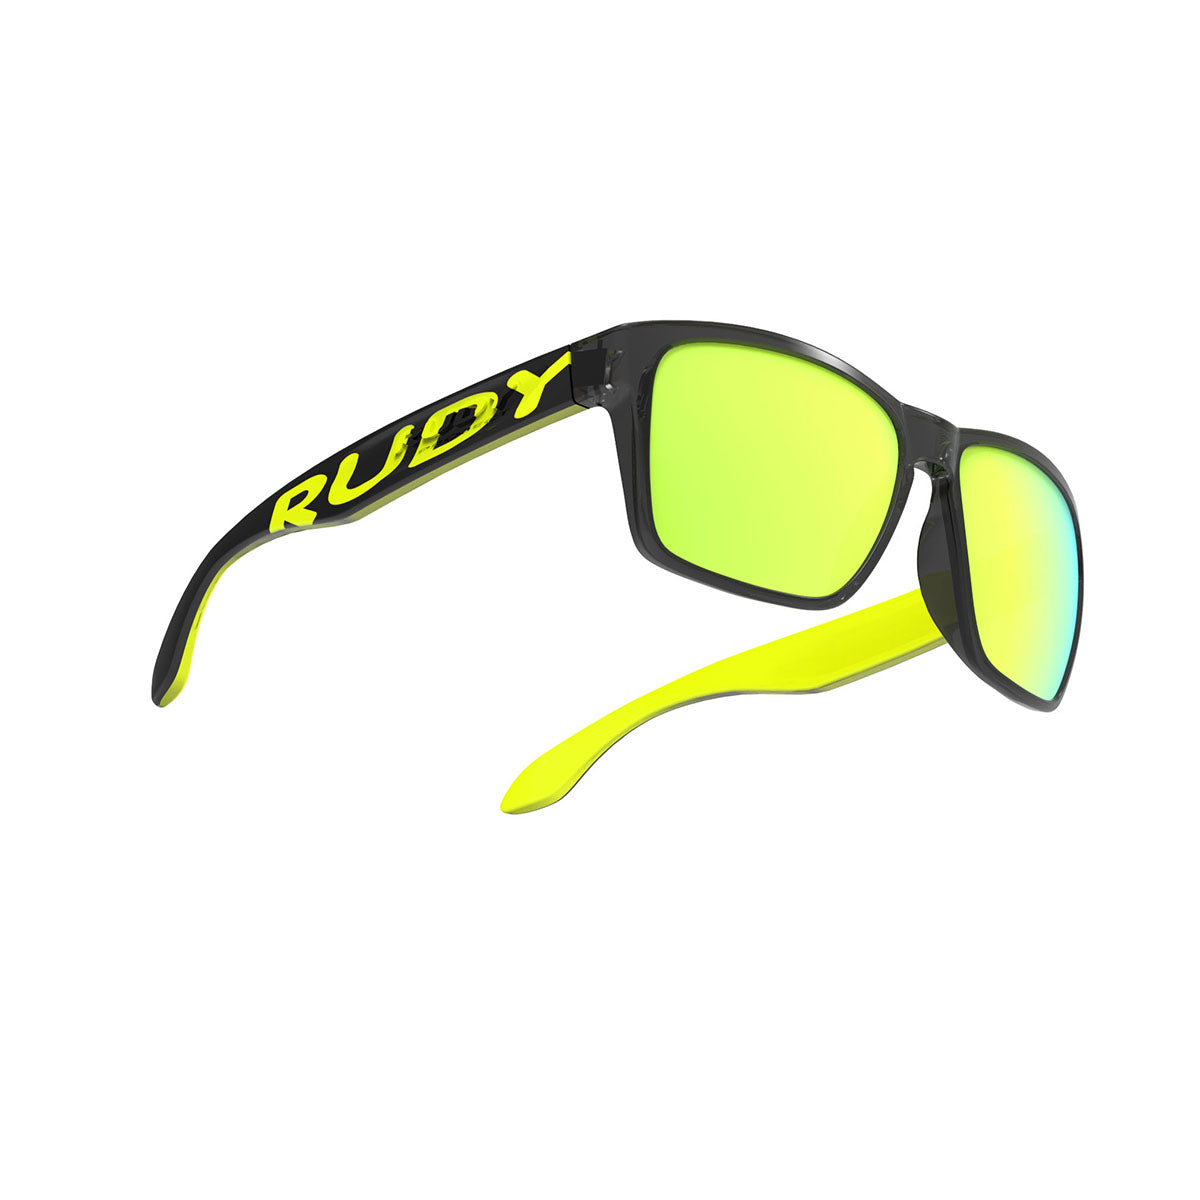 Rudy Project - Spinhawk - frame color: Crystal Ash Yellow - lens color: Multilaser LIme - Bumper Color:  - photo angle: Bottom Front Angle Variant Hover Image